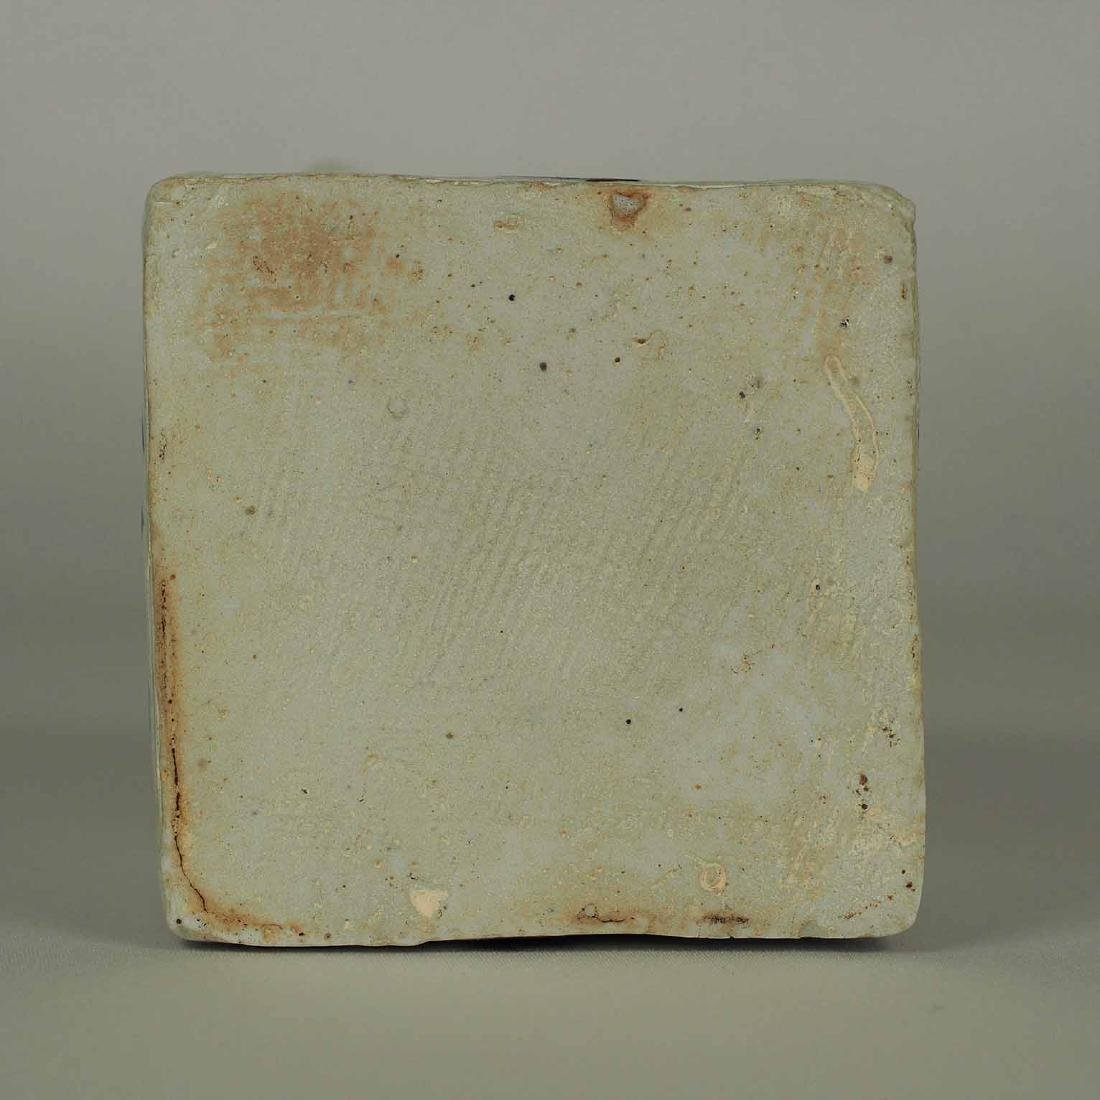 Square Jarlet with Two Dragons, Yuan Dynasty - 7